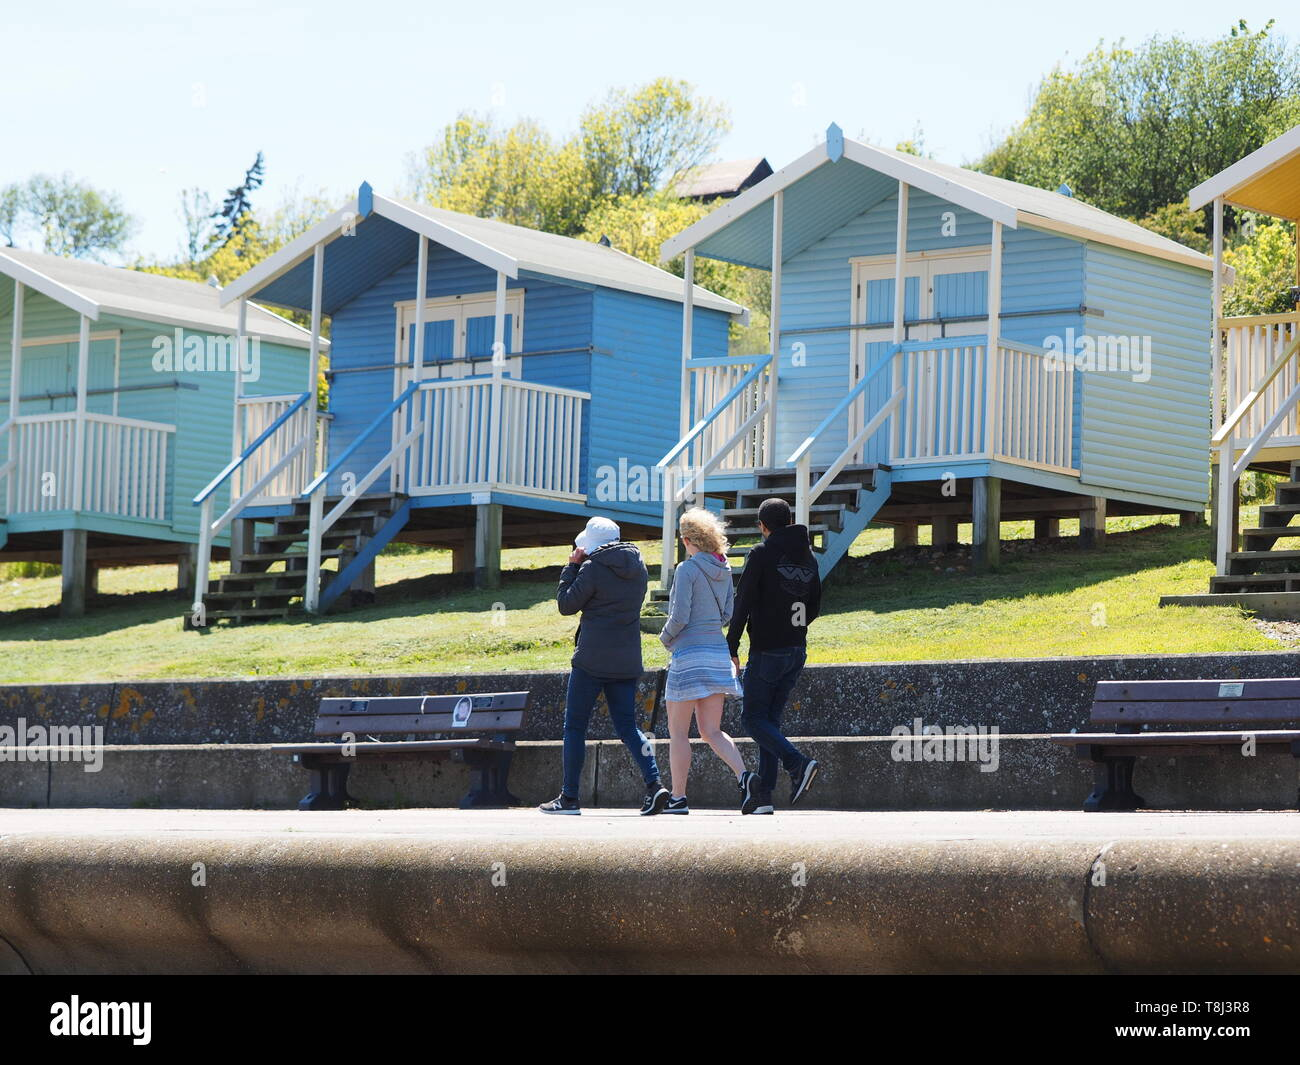 Minster on Sea, Kent, UK. 14th May, 2019. UK Weather: a sunny day in Minster on Sea, Kent. Credit: James Bell/Alamy Live News Stock Photo